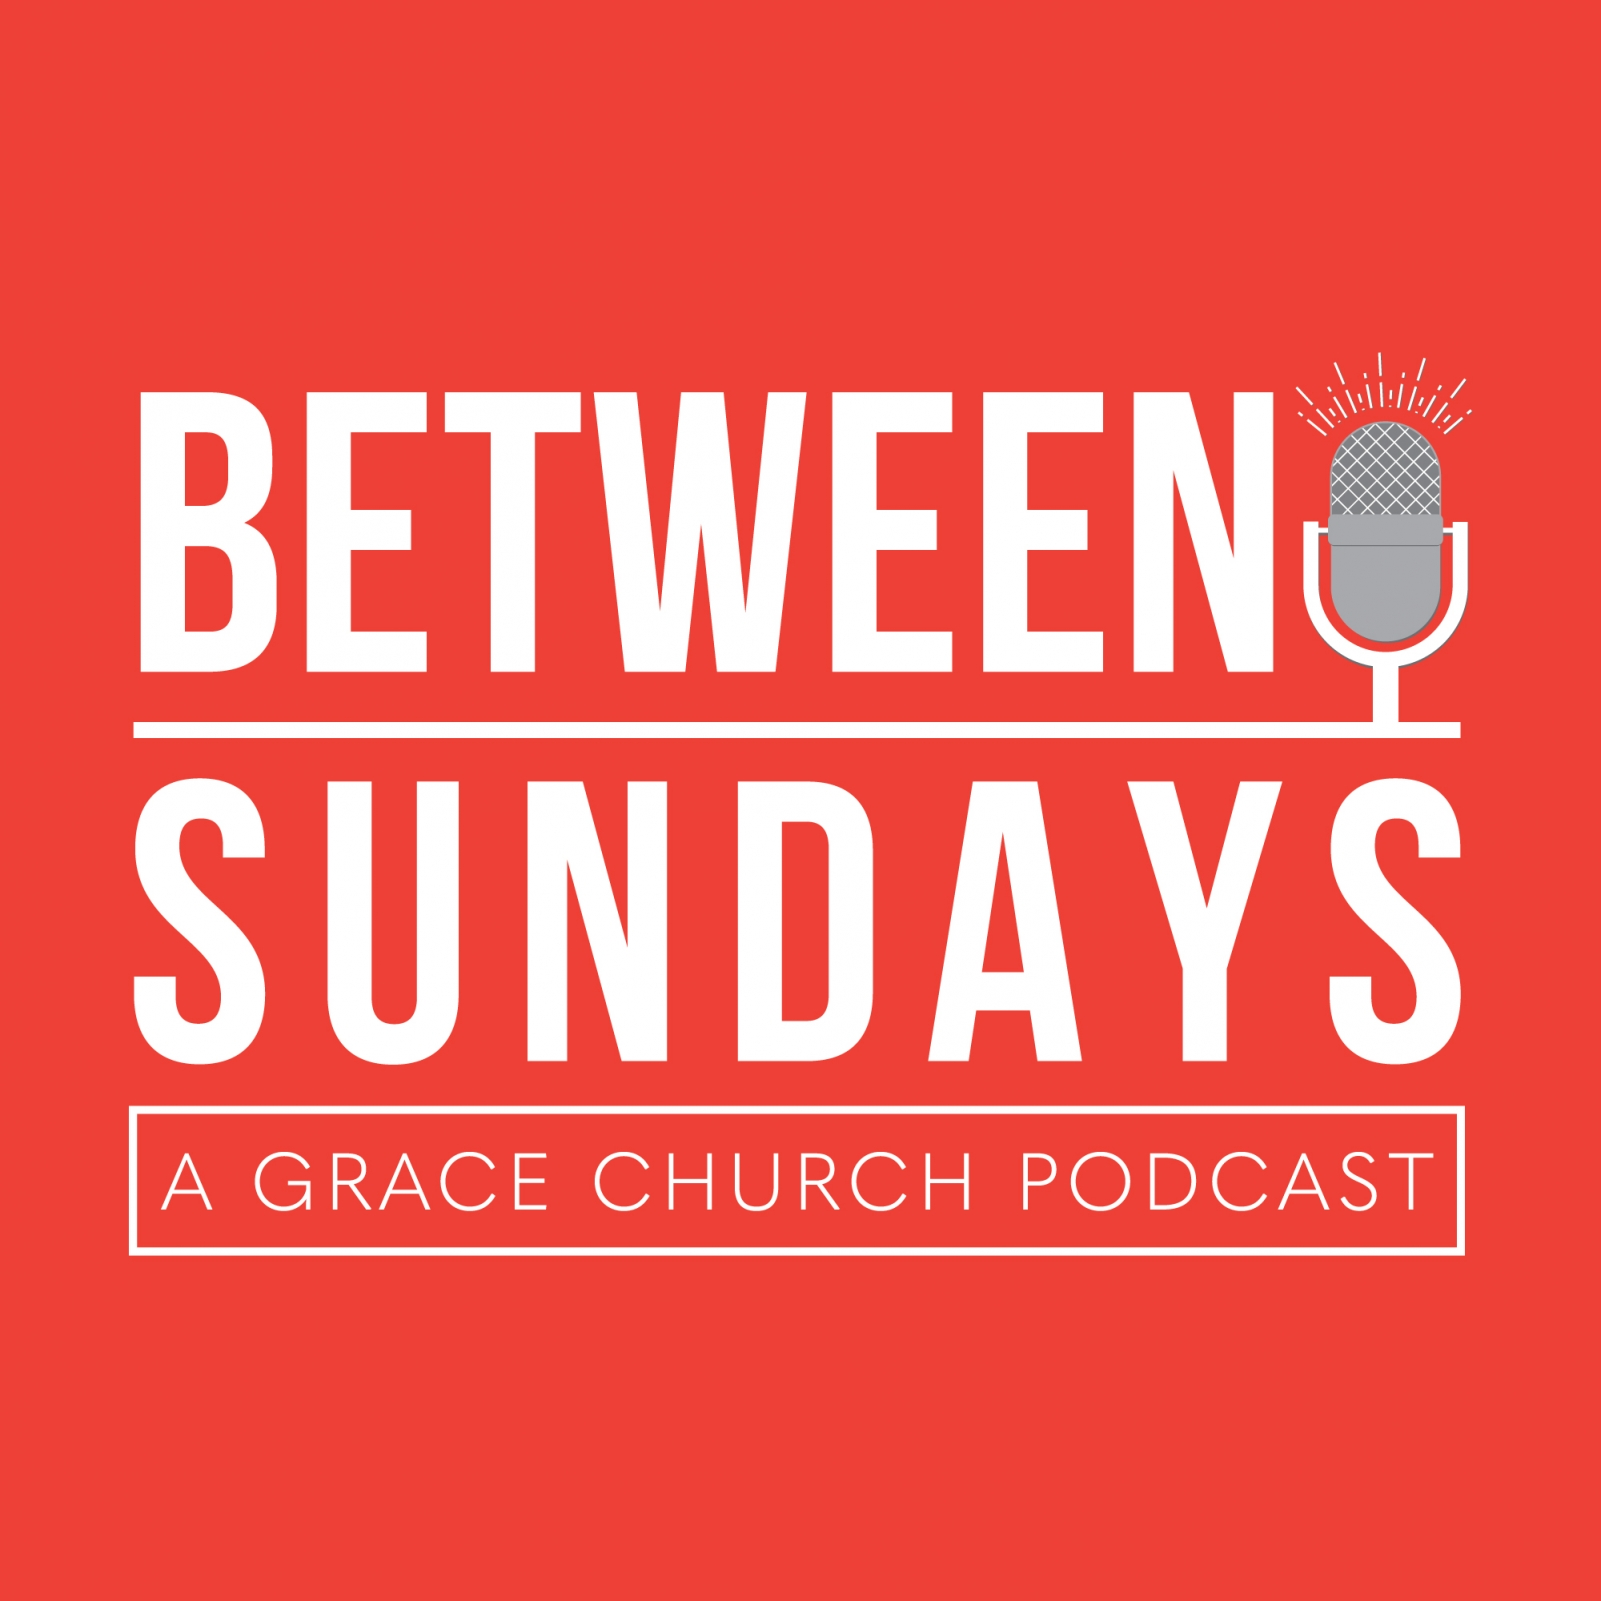 Between Sundays Episode 13 Hagar & Ishamel